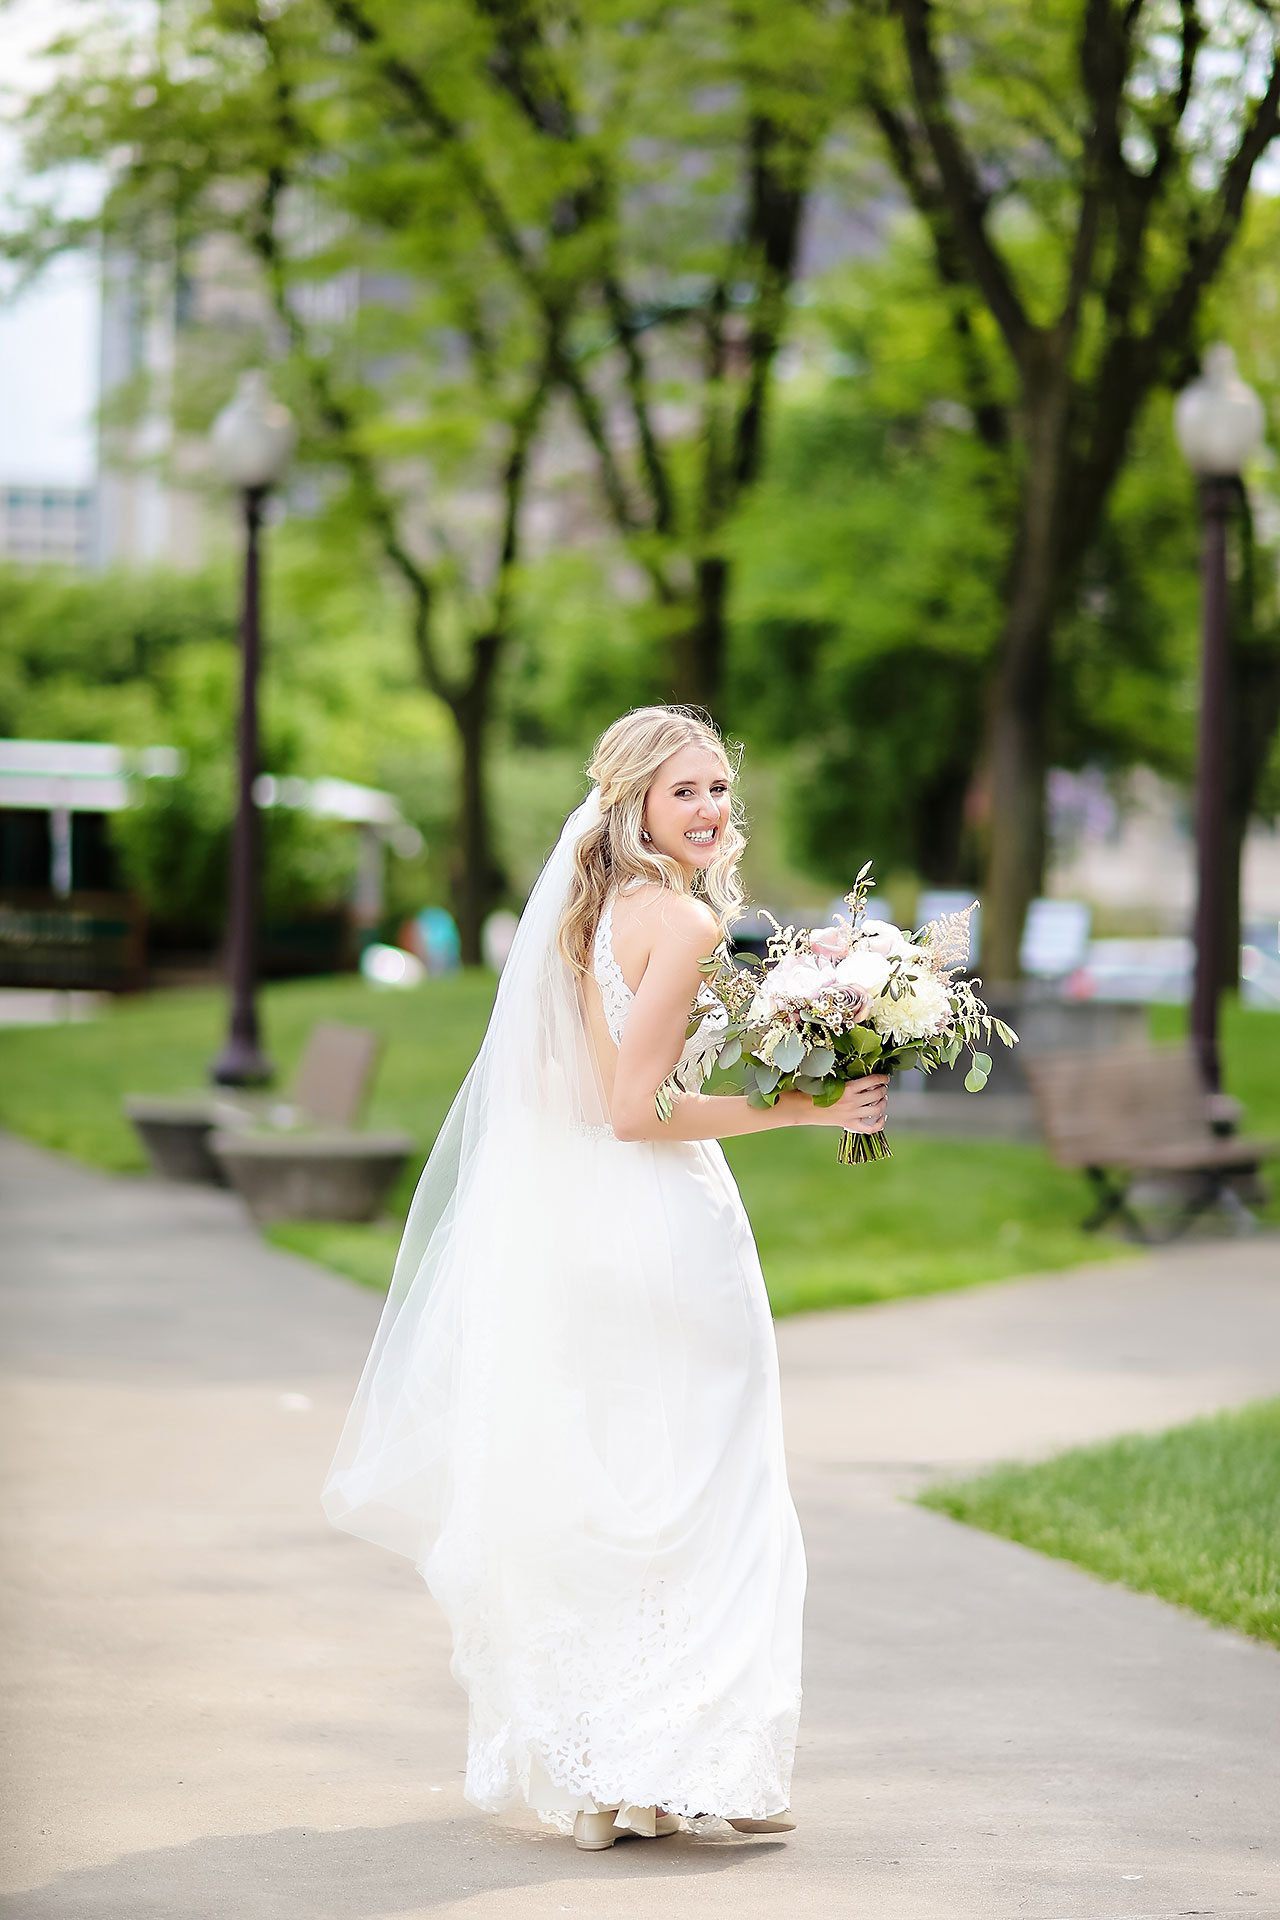 Allison Jeff Union Station Crowne Plaza Indianapolis wedding 180